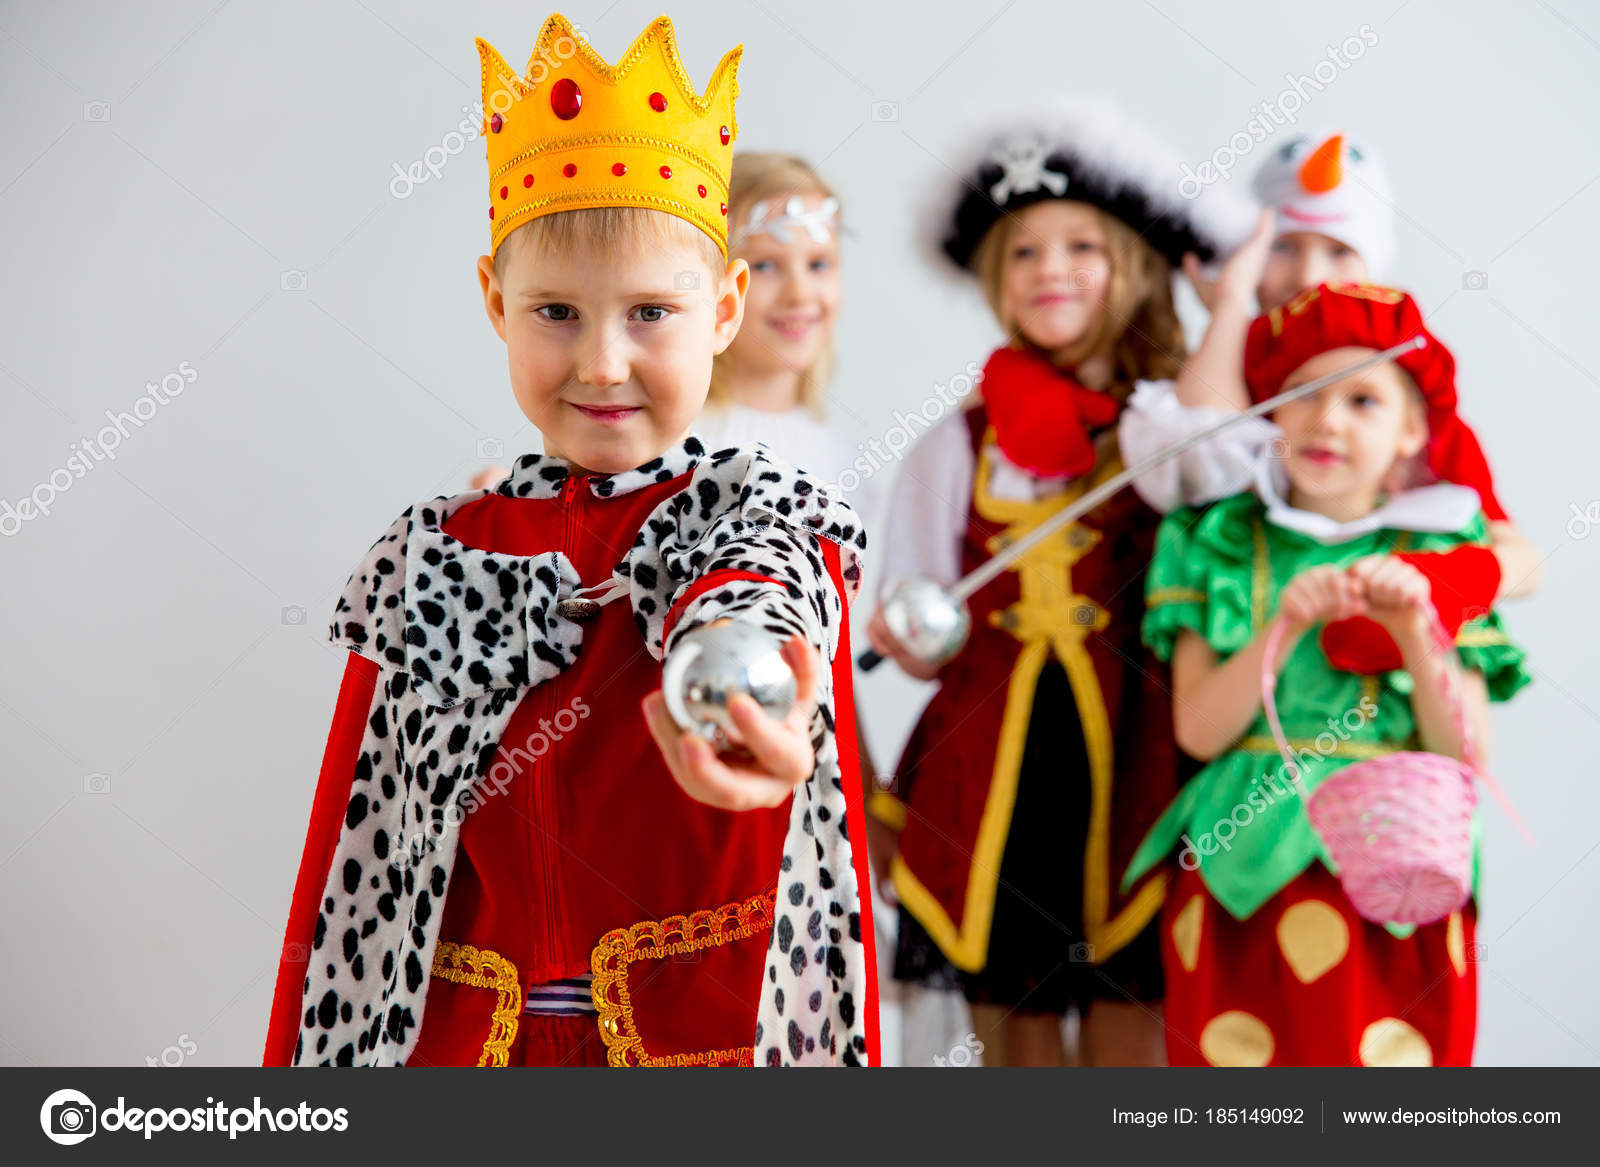 Kinder Kostüm party — Stockfoto © Lenanichizhenova #185149092